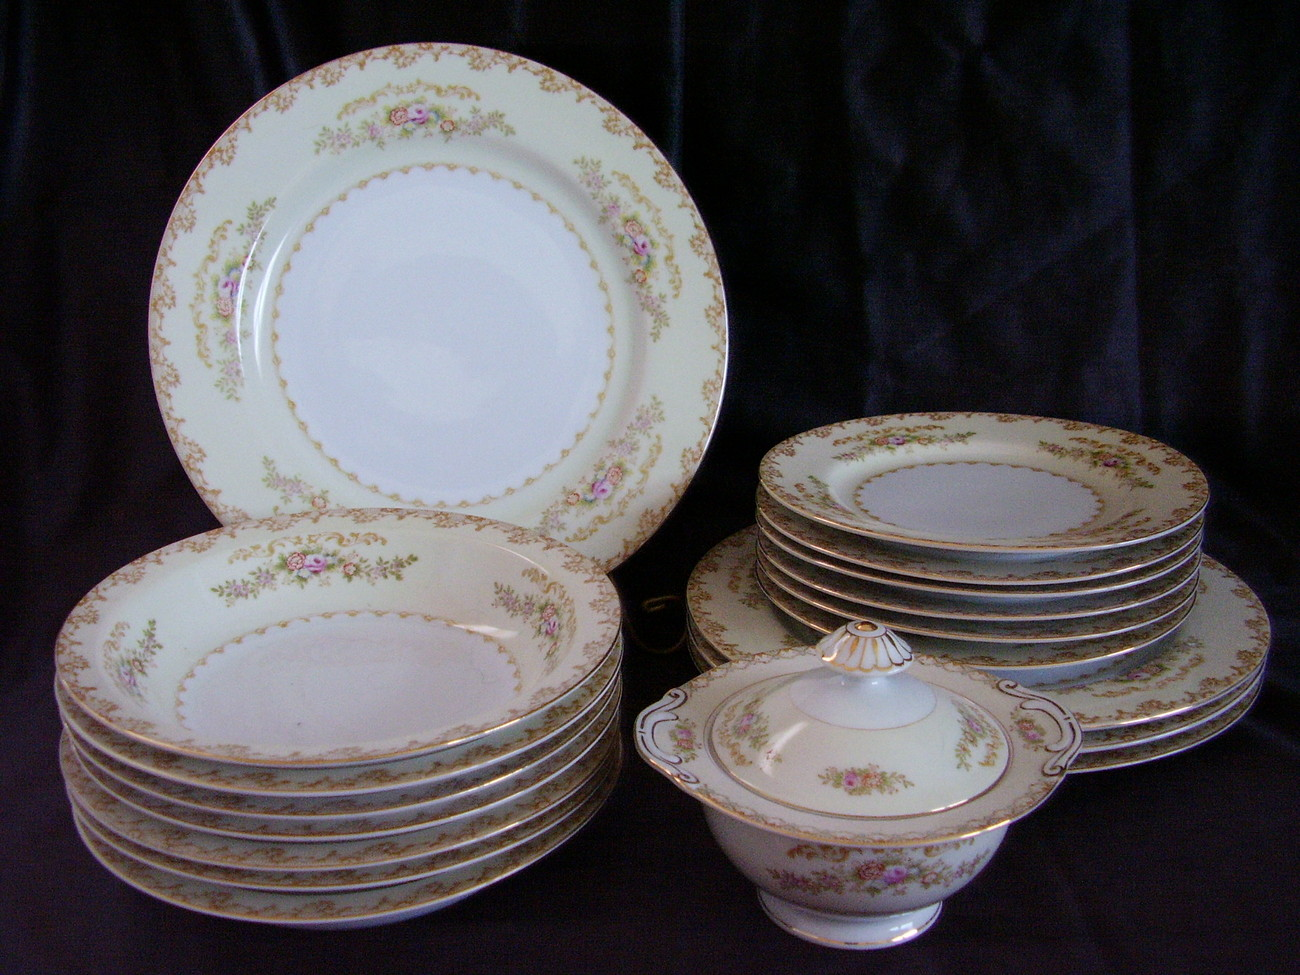 Vintage Jyoto China Made In Occupied Japan Lot Floral Gold